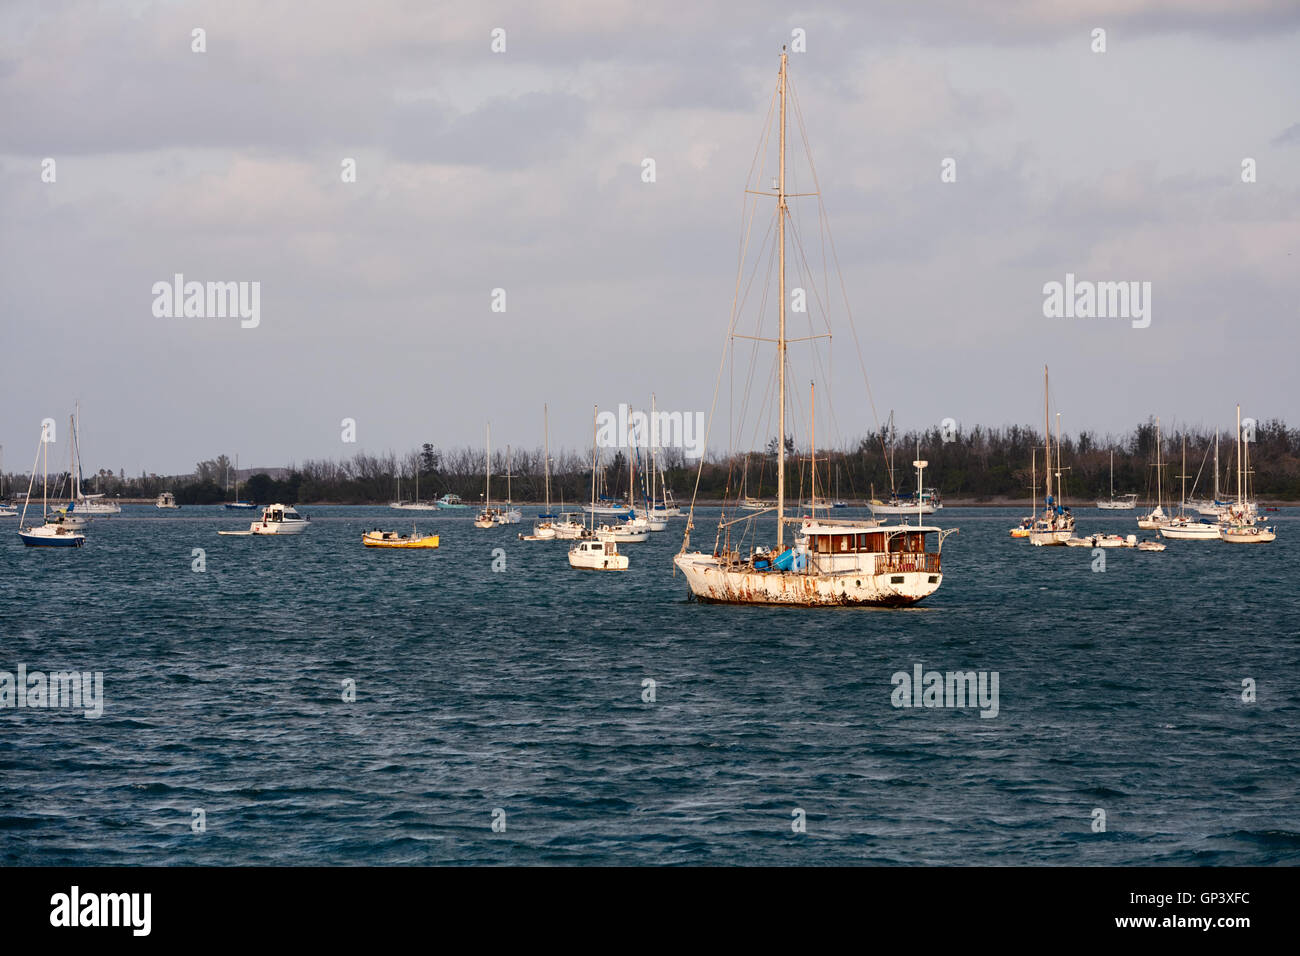 Sailboats anchored in the mooring field in Key West, Florida - Stock Image